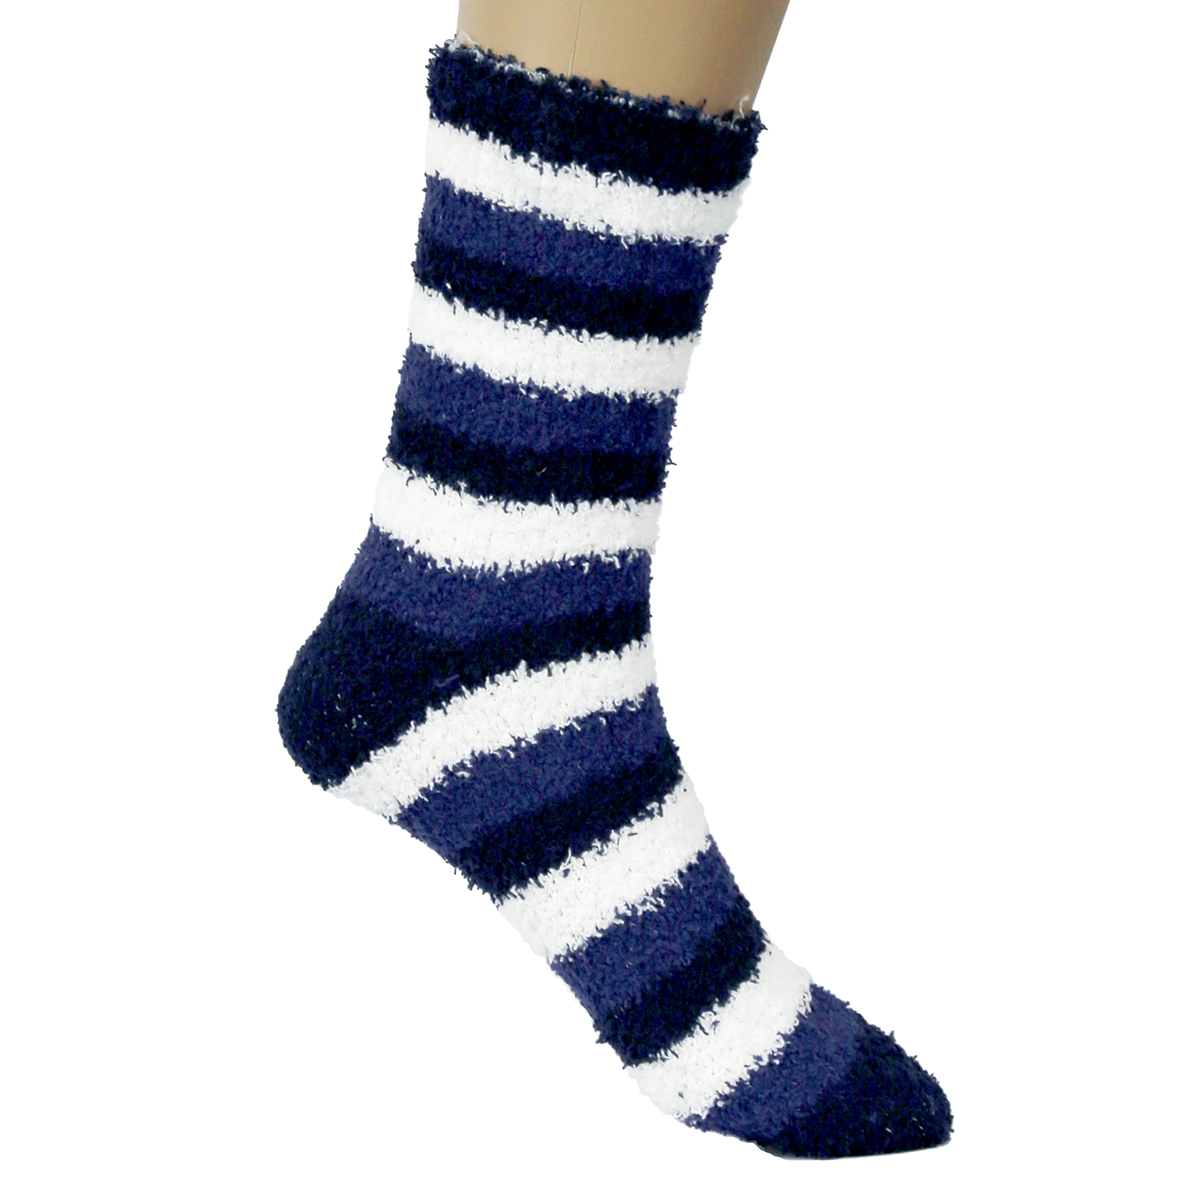 New Mens Warm Fuzzy Socks Striped Cool Fluffy Colorful ...